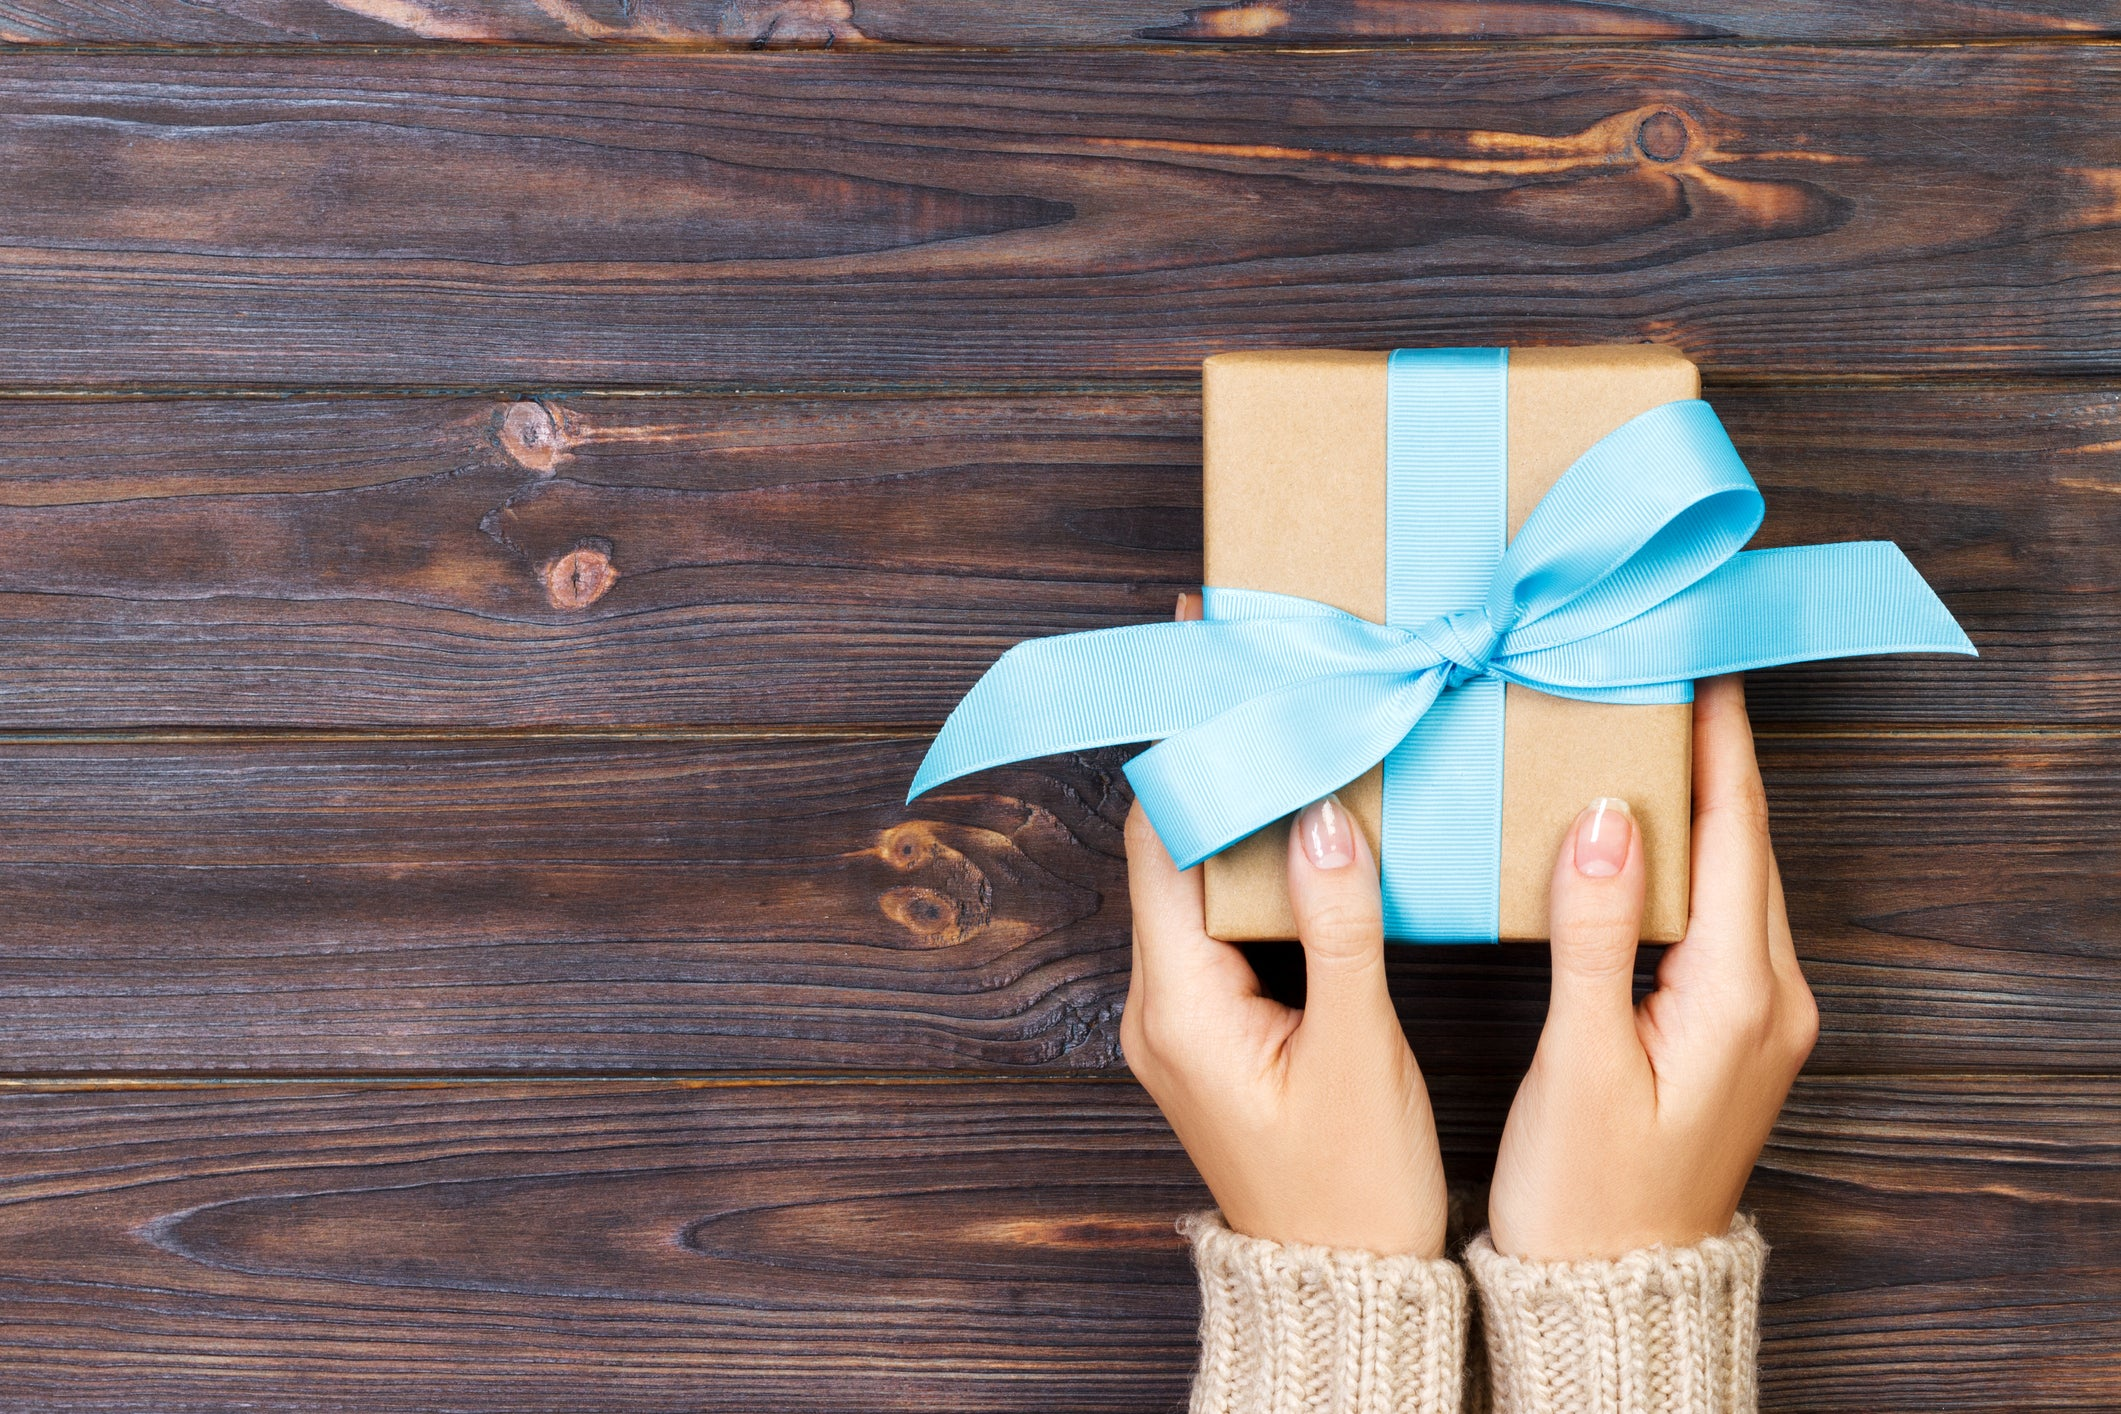 Take the Big Gift the IRS Just Offered You | The Motley Fool